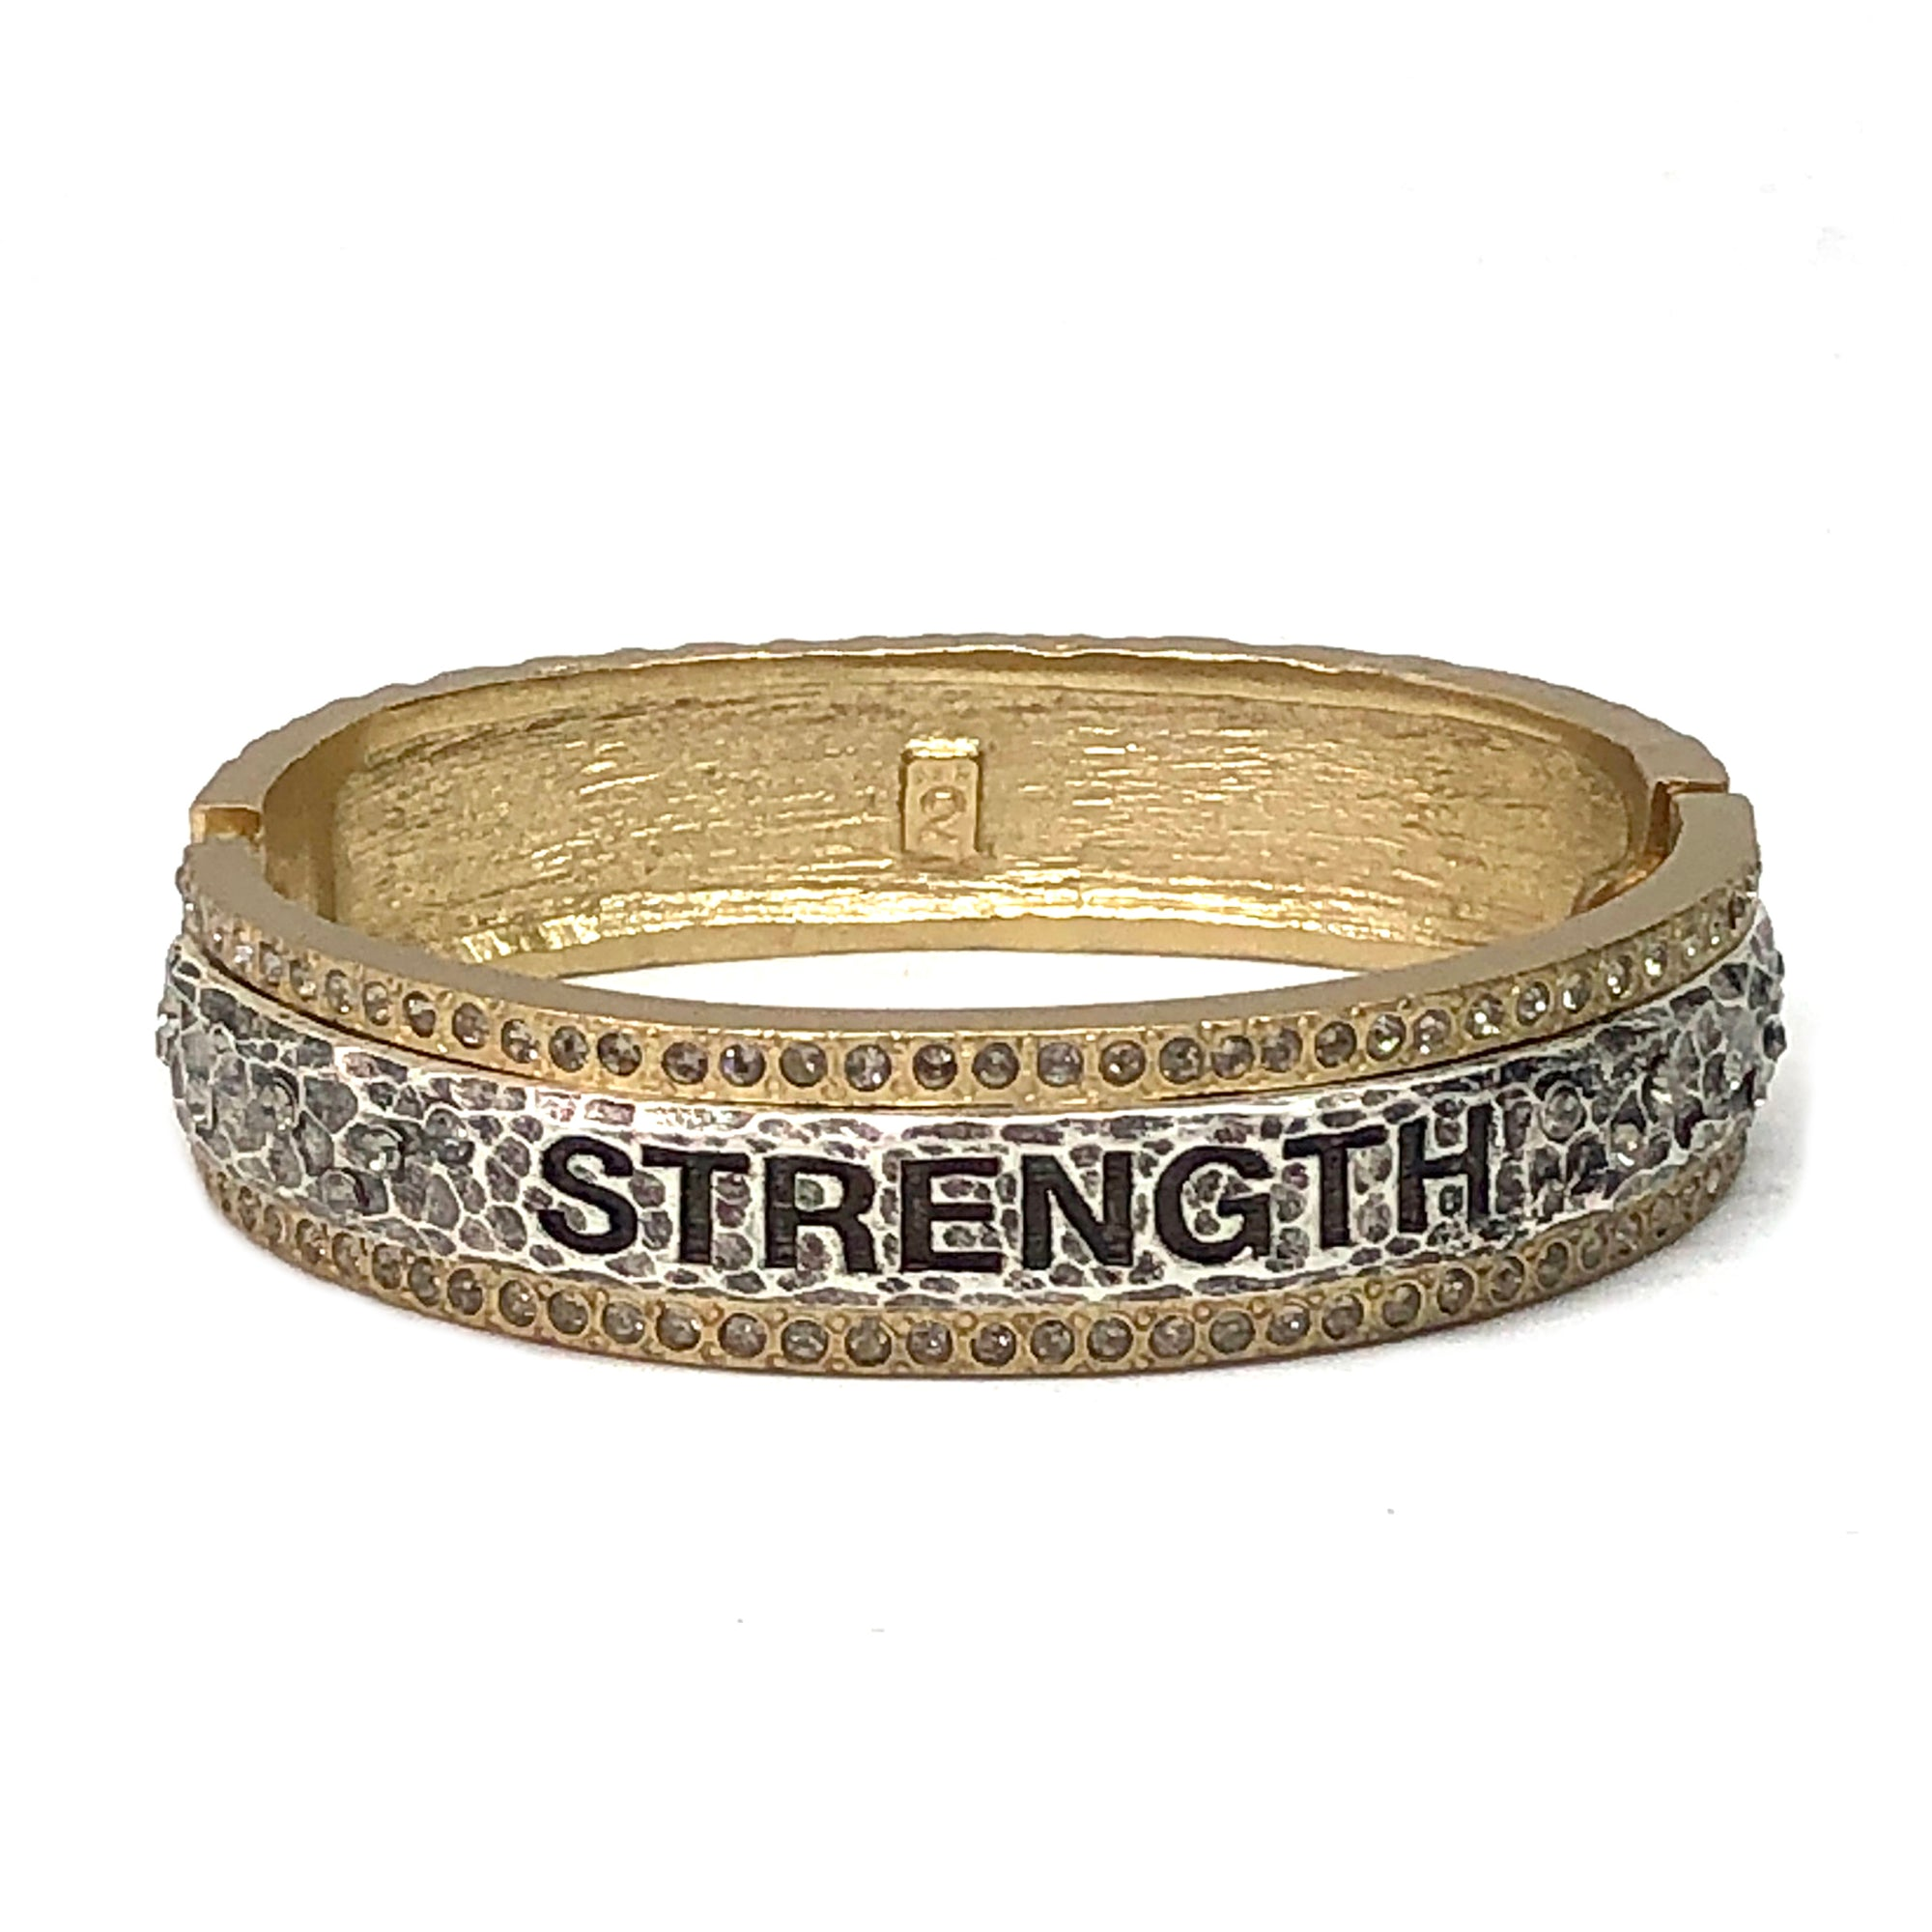 GOLD STRENGTH BANGLE